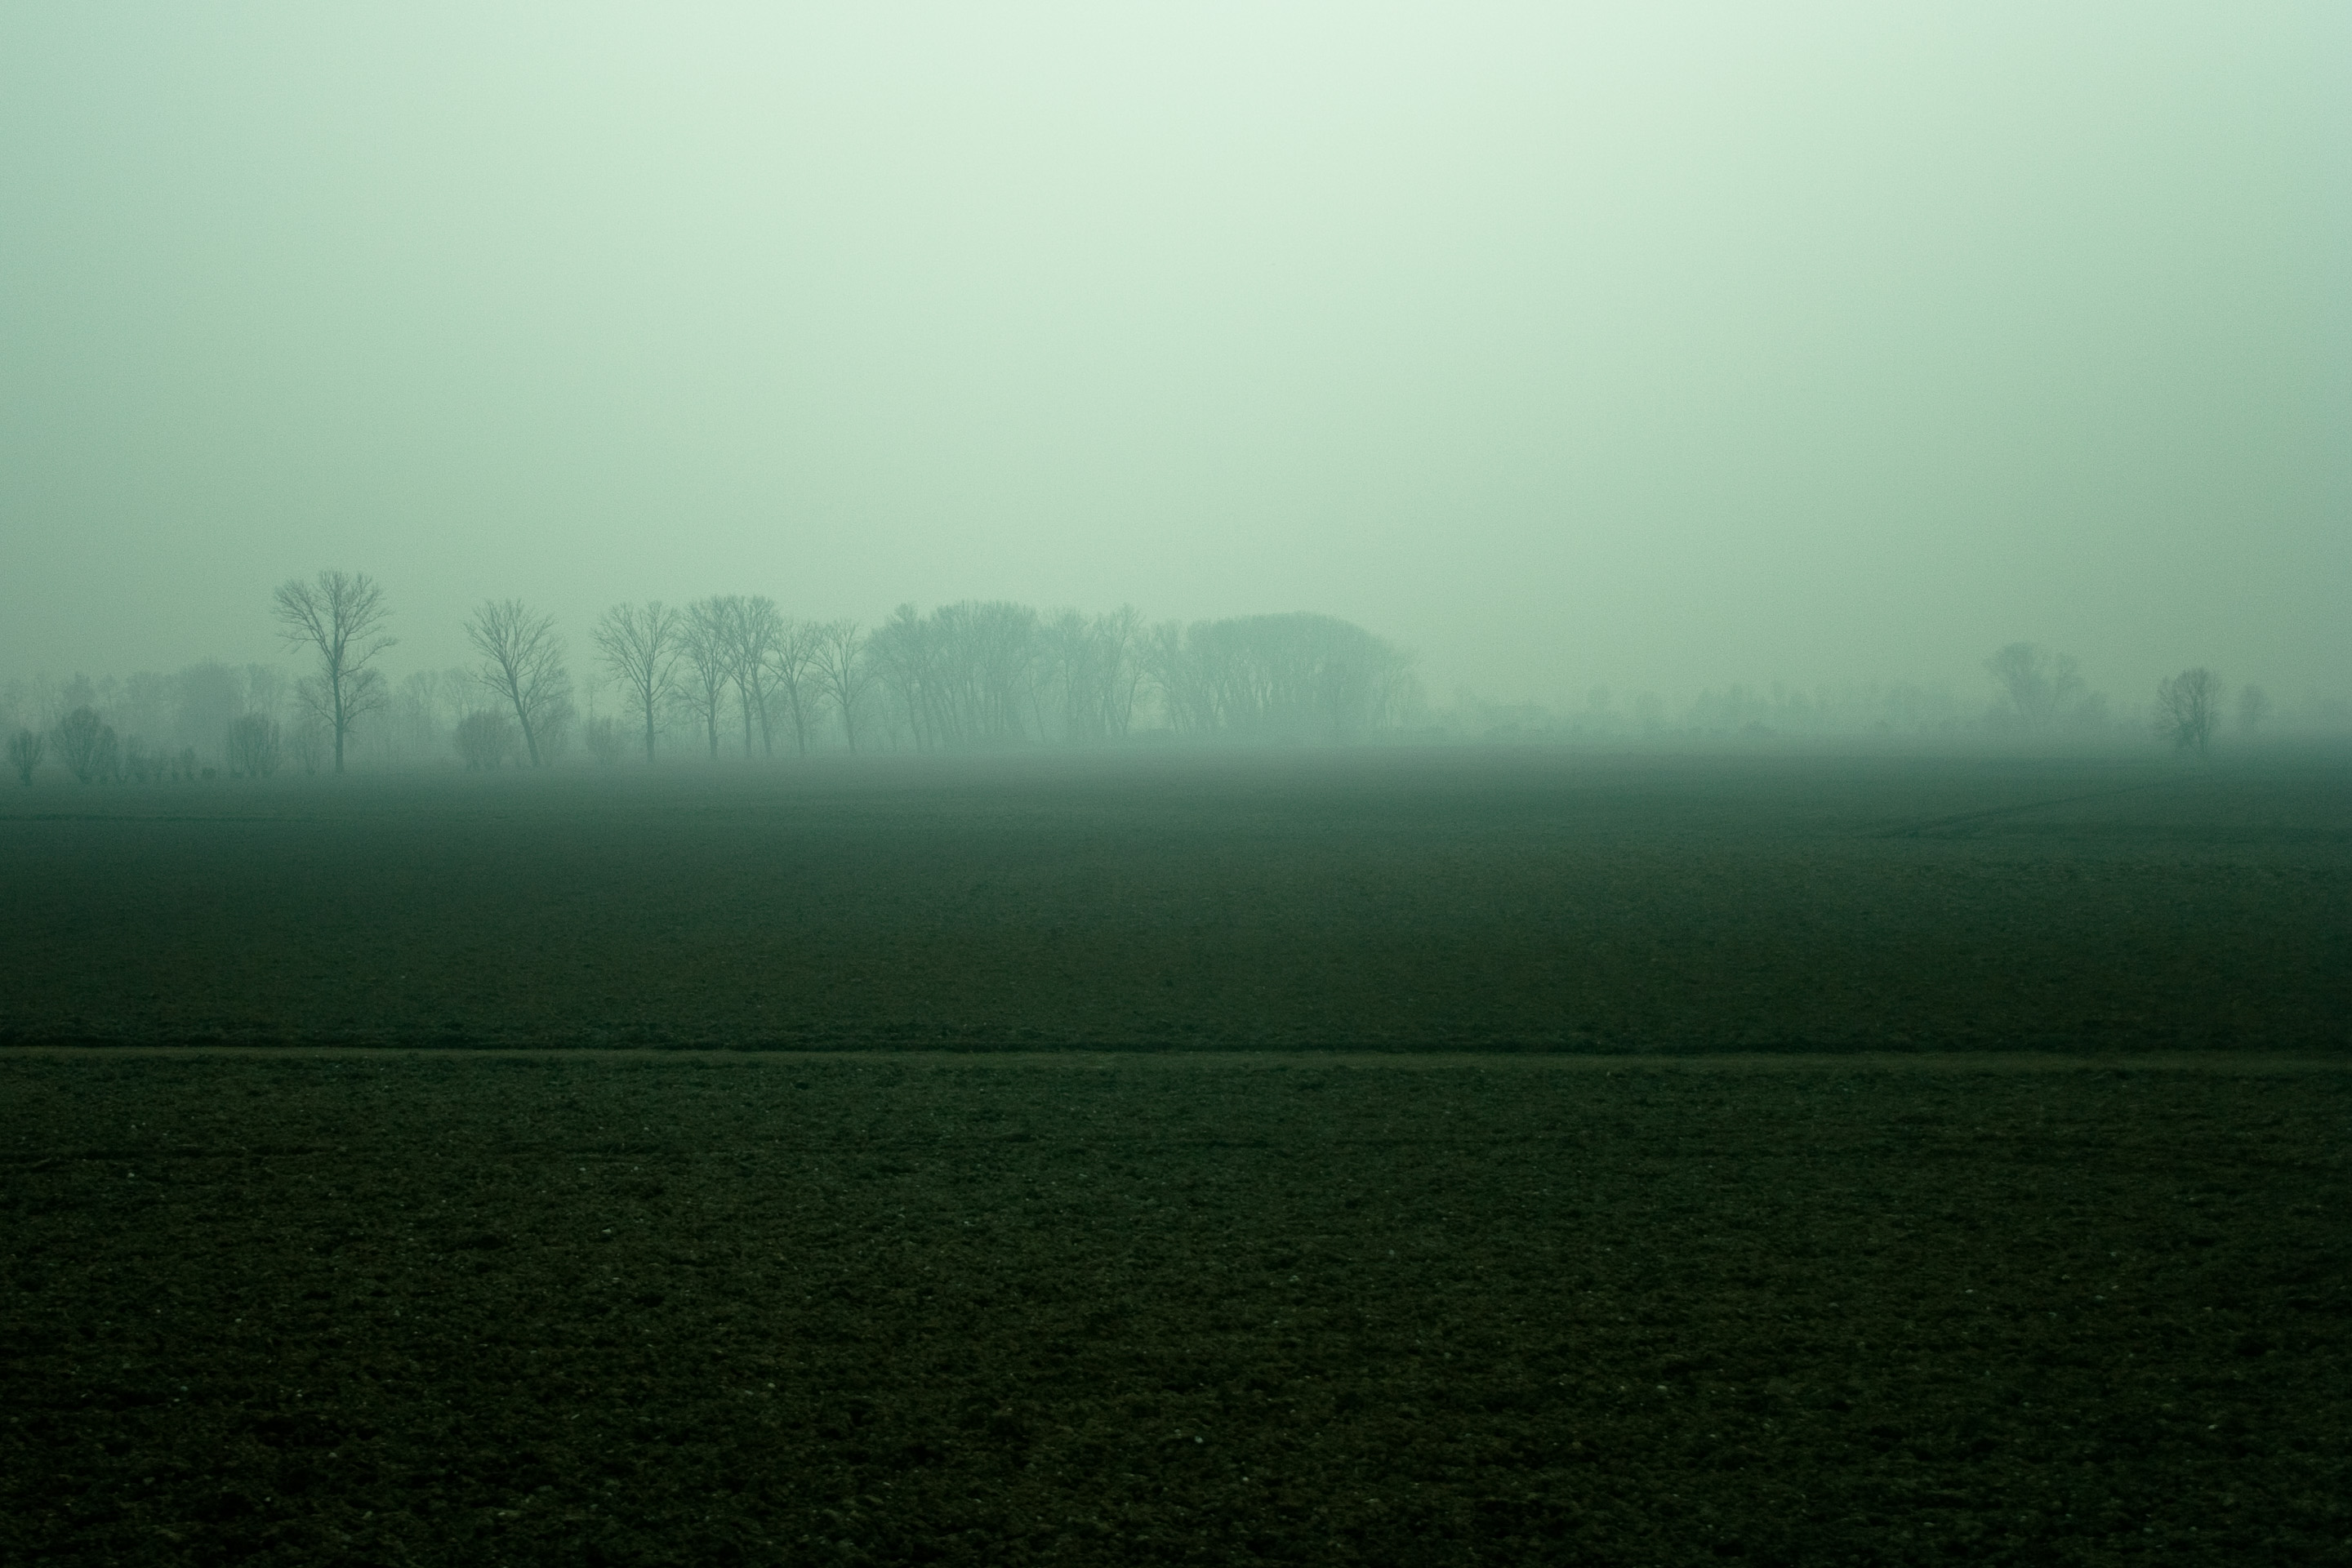 50 · Sunset in the mist, I Click to view previous post